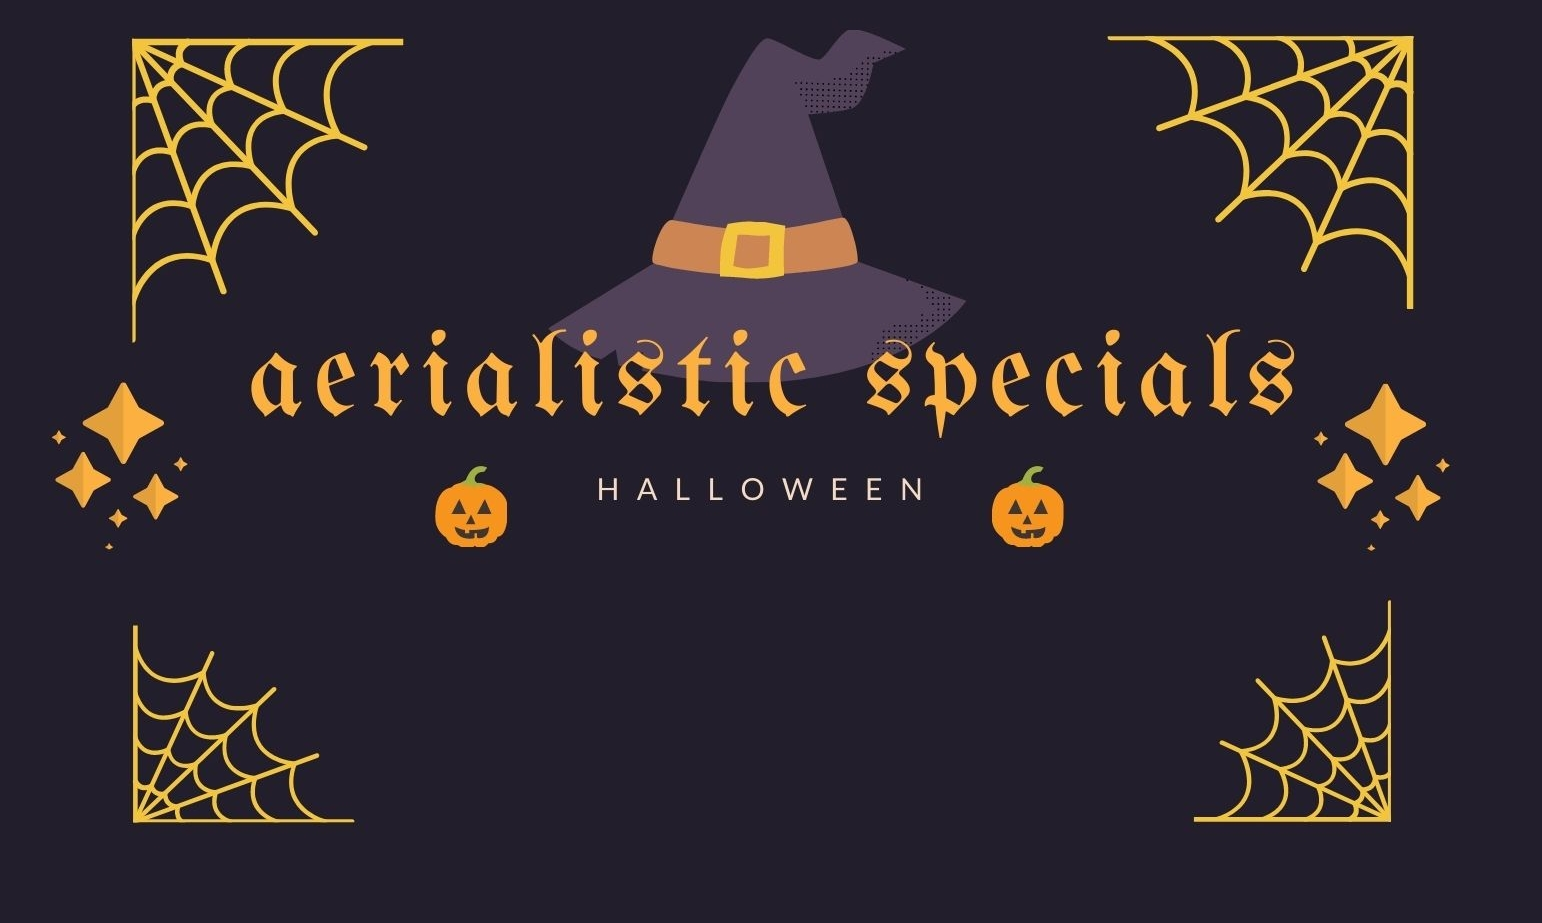 HALLOWEEN SPECIALS bei Aerialistic Body & Soul